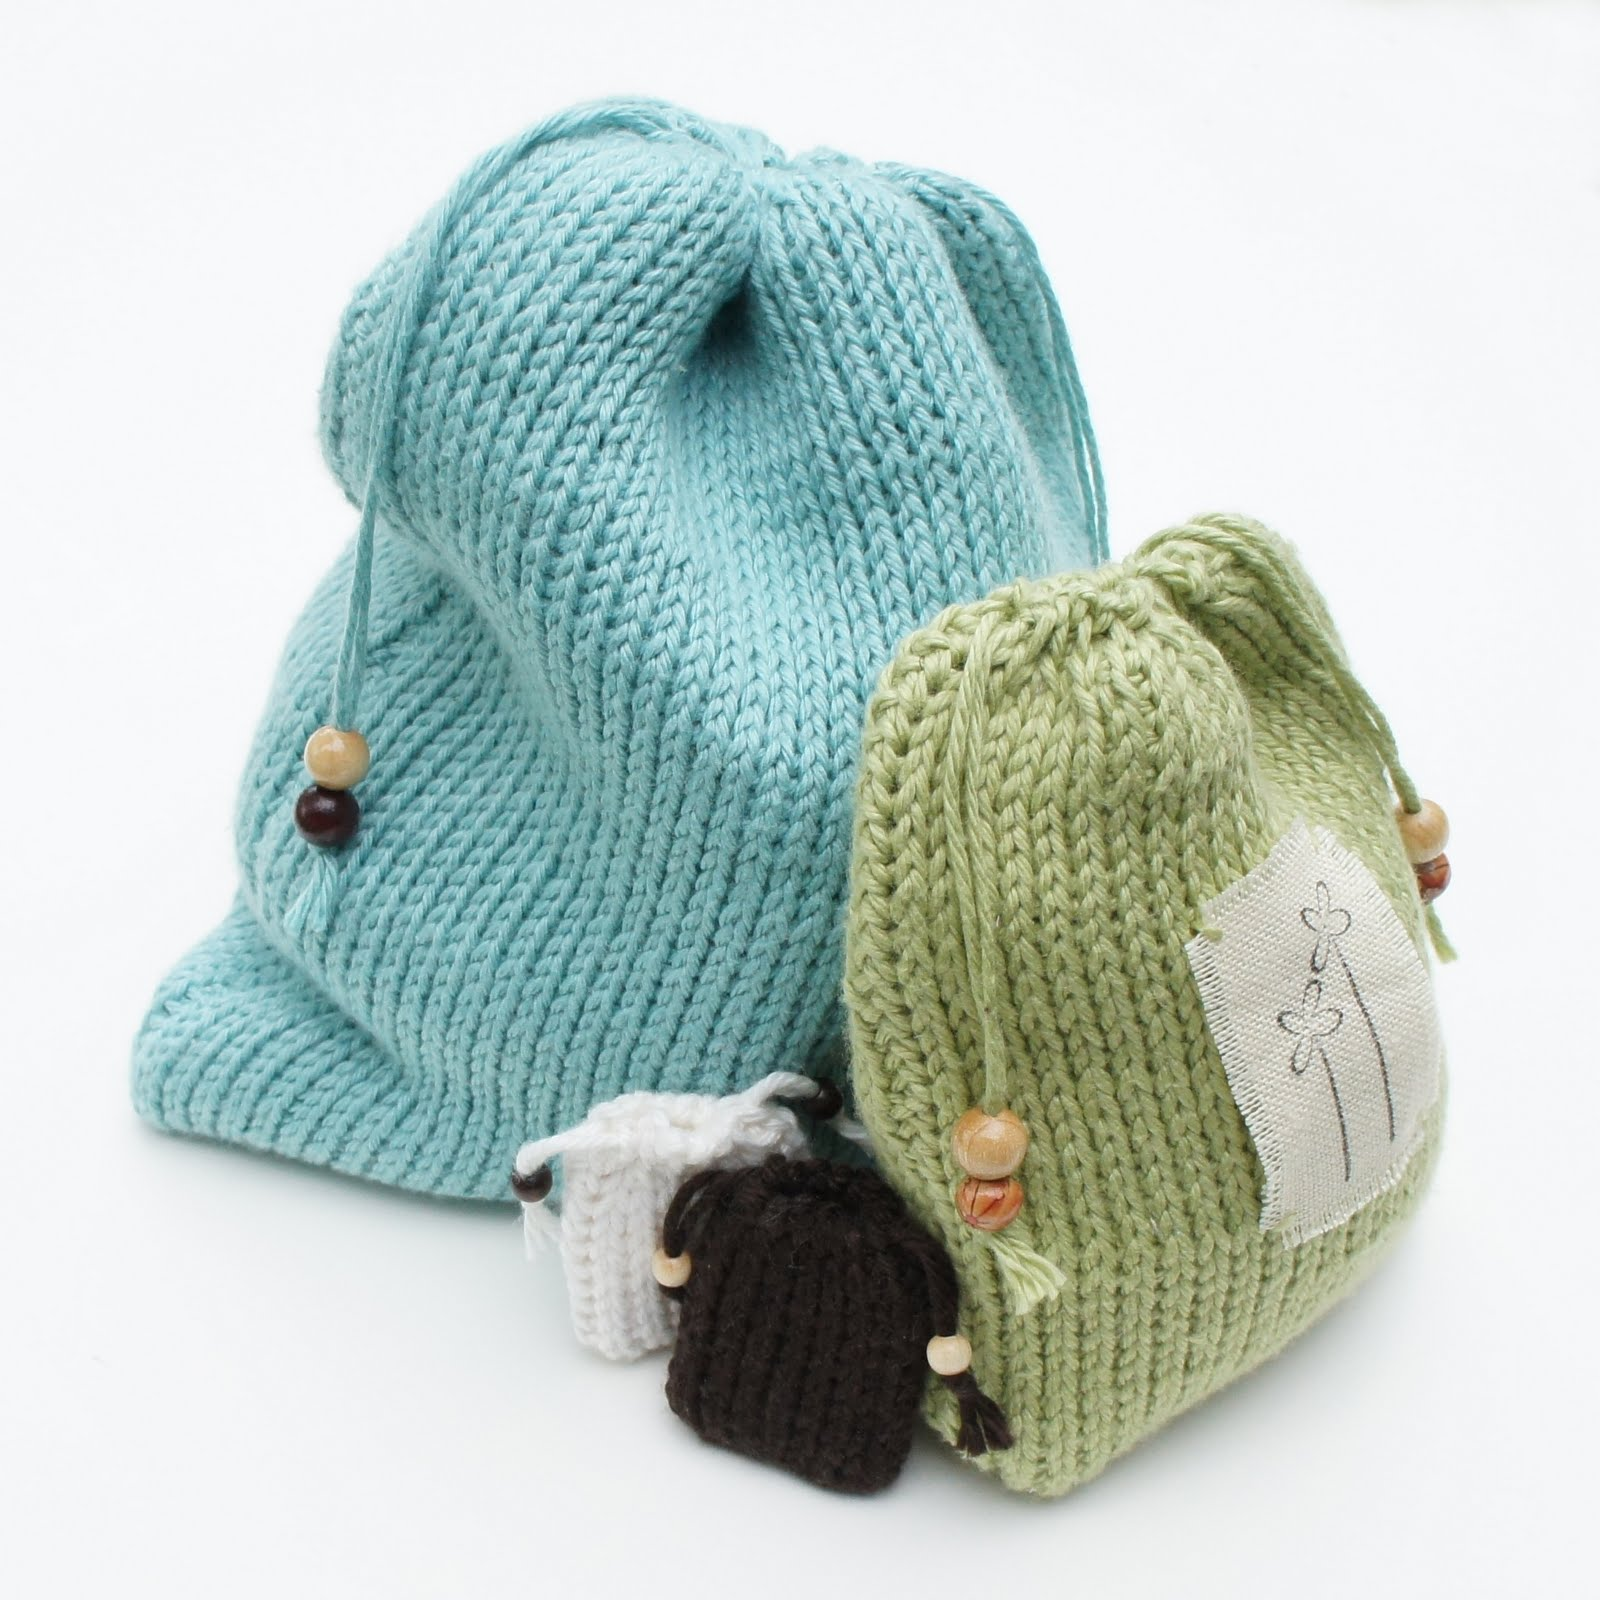 knot•sew•cute design shop: how to do the tunisian knit stitch.